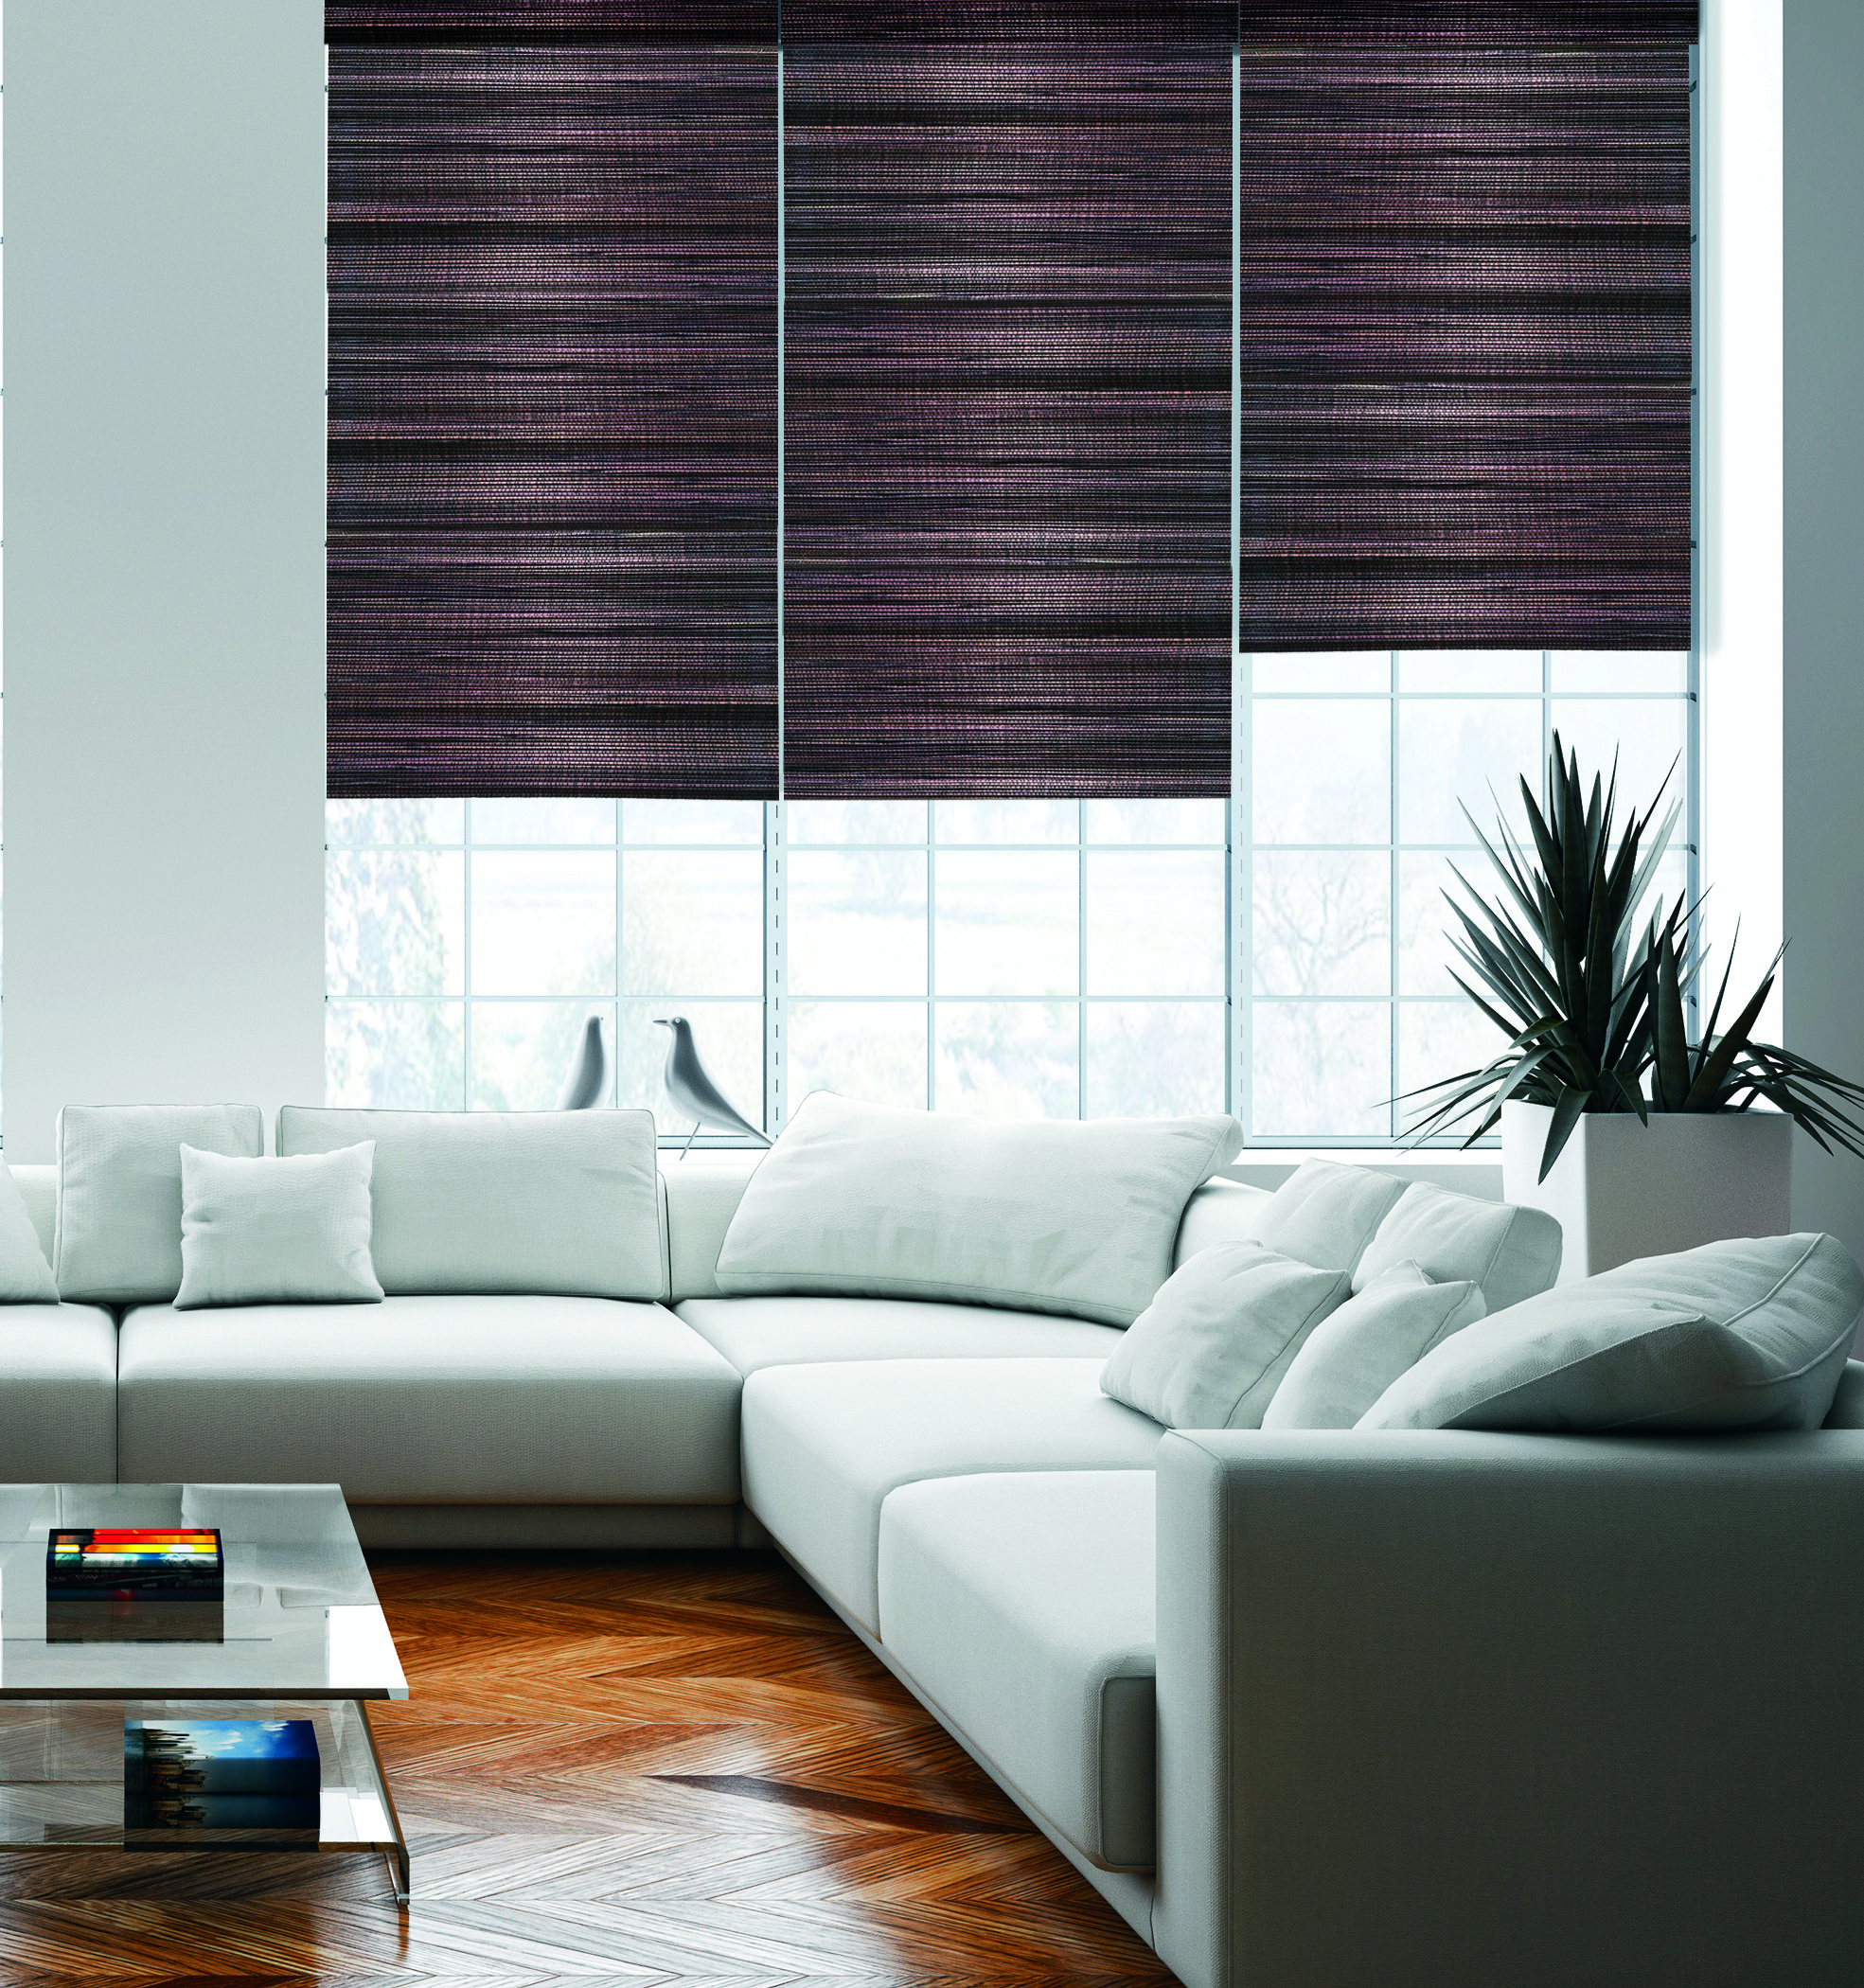 unland more blinds decoteam pin explore sonnenschutz contract gardinen roller vorhang fensterideen und curtains and fabrics